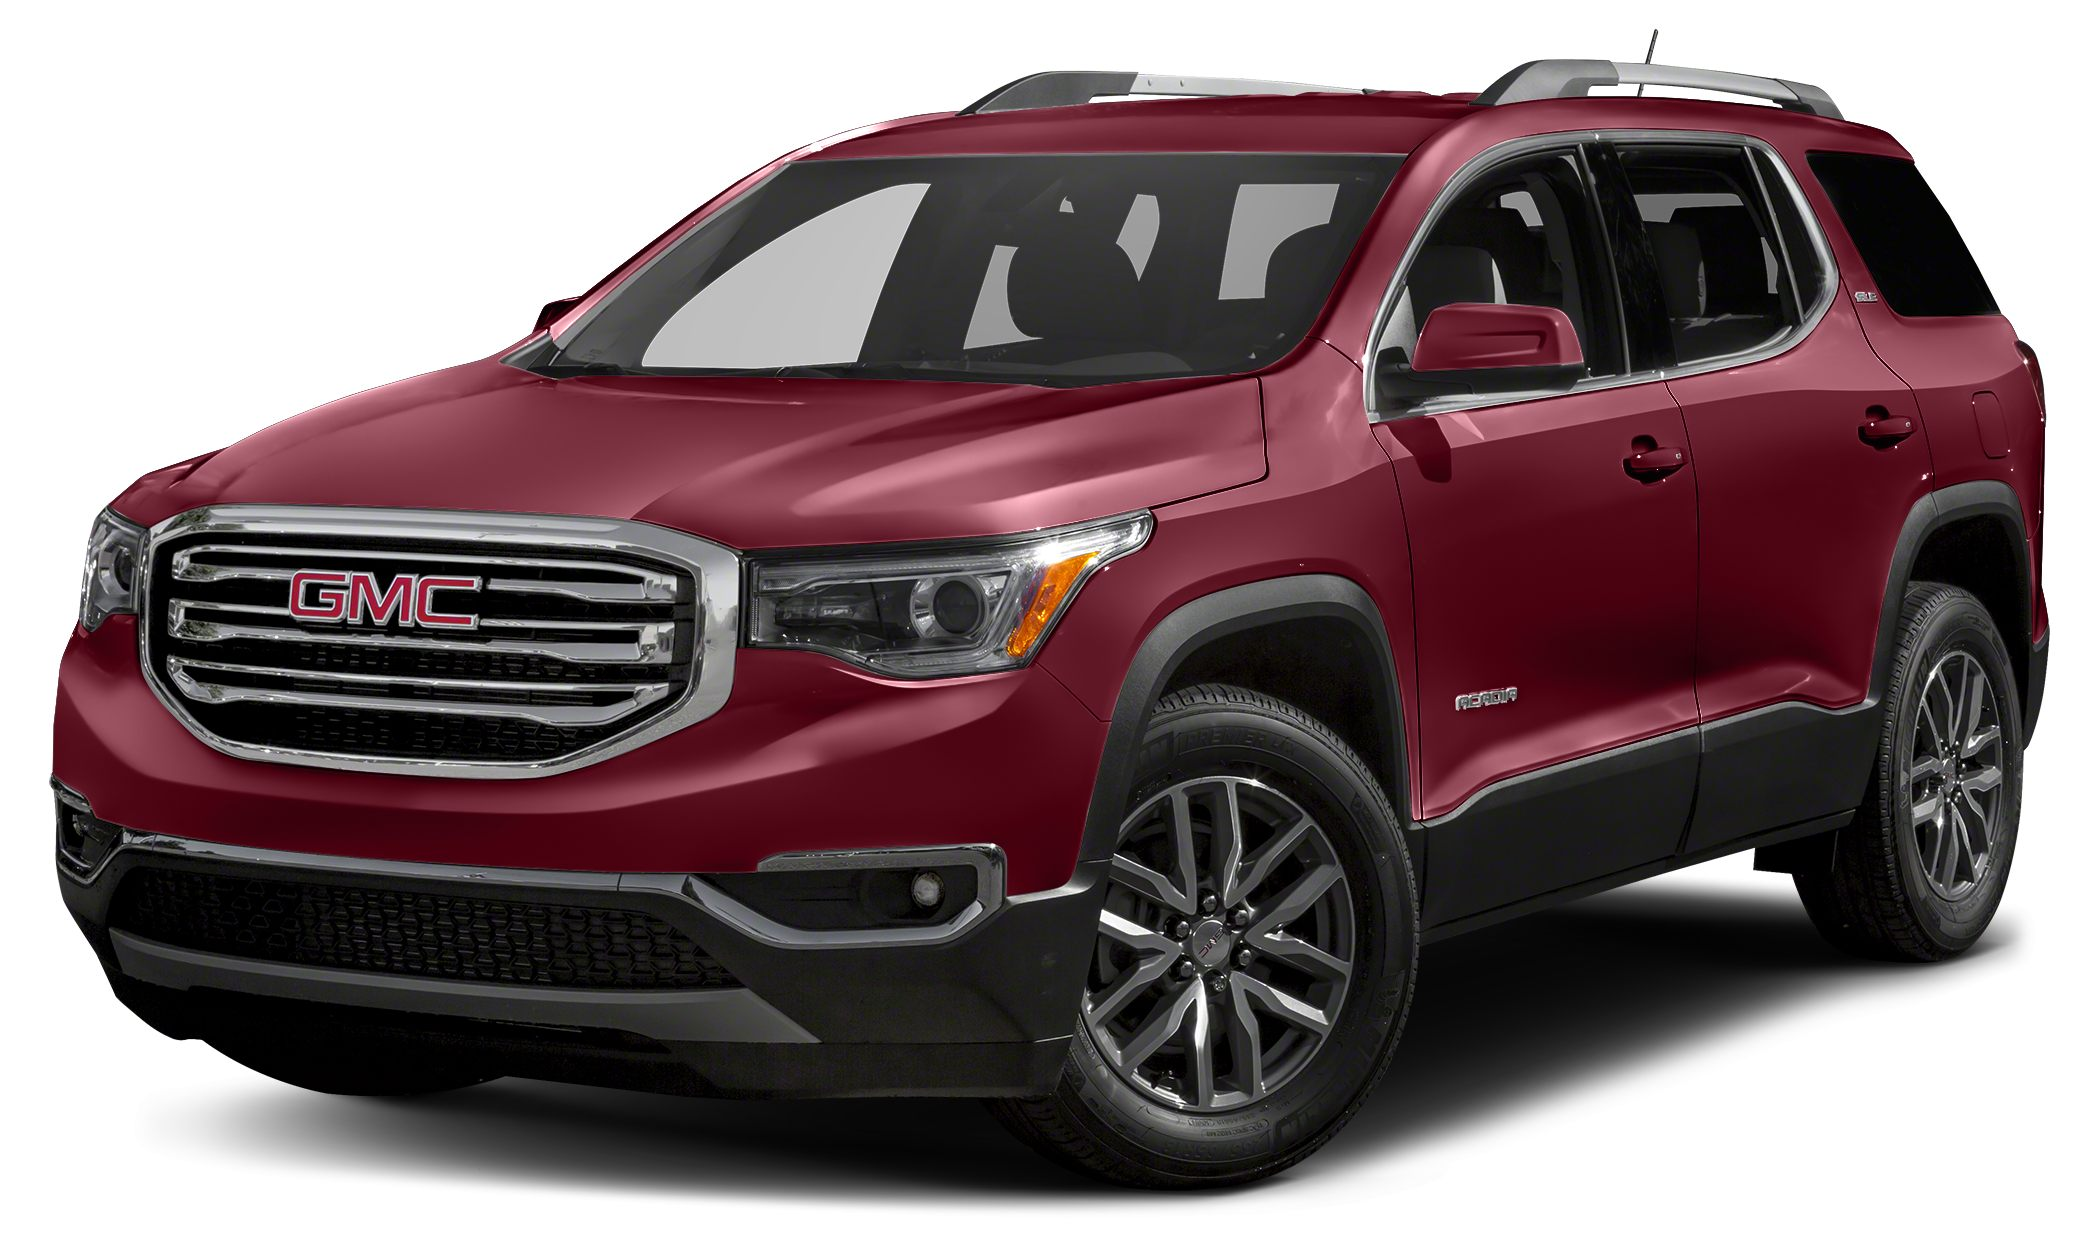 2018 GMC Acadia SLT-1 FWD Jet Black Leather WARRANTY FOREVER included at NO EXTRA COST See